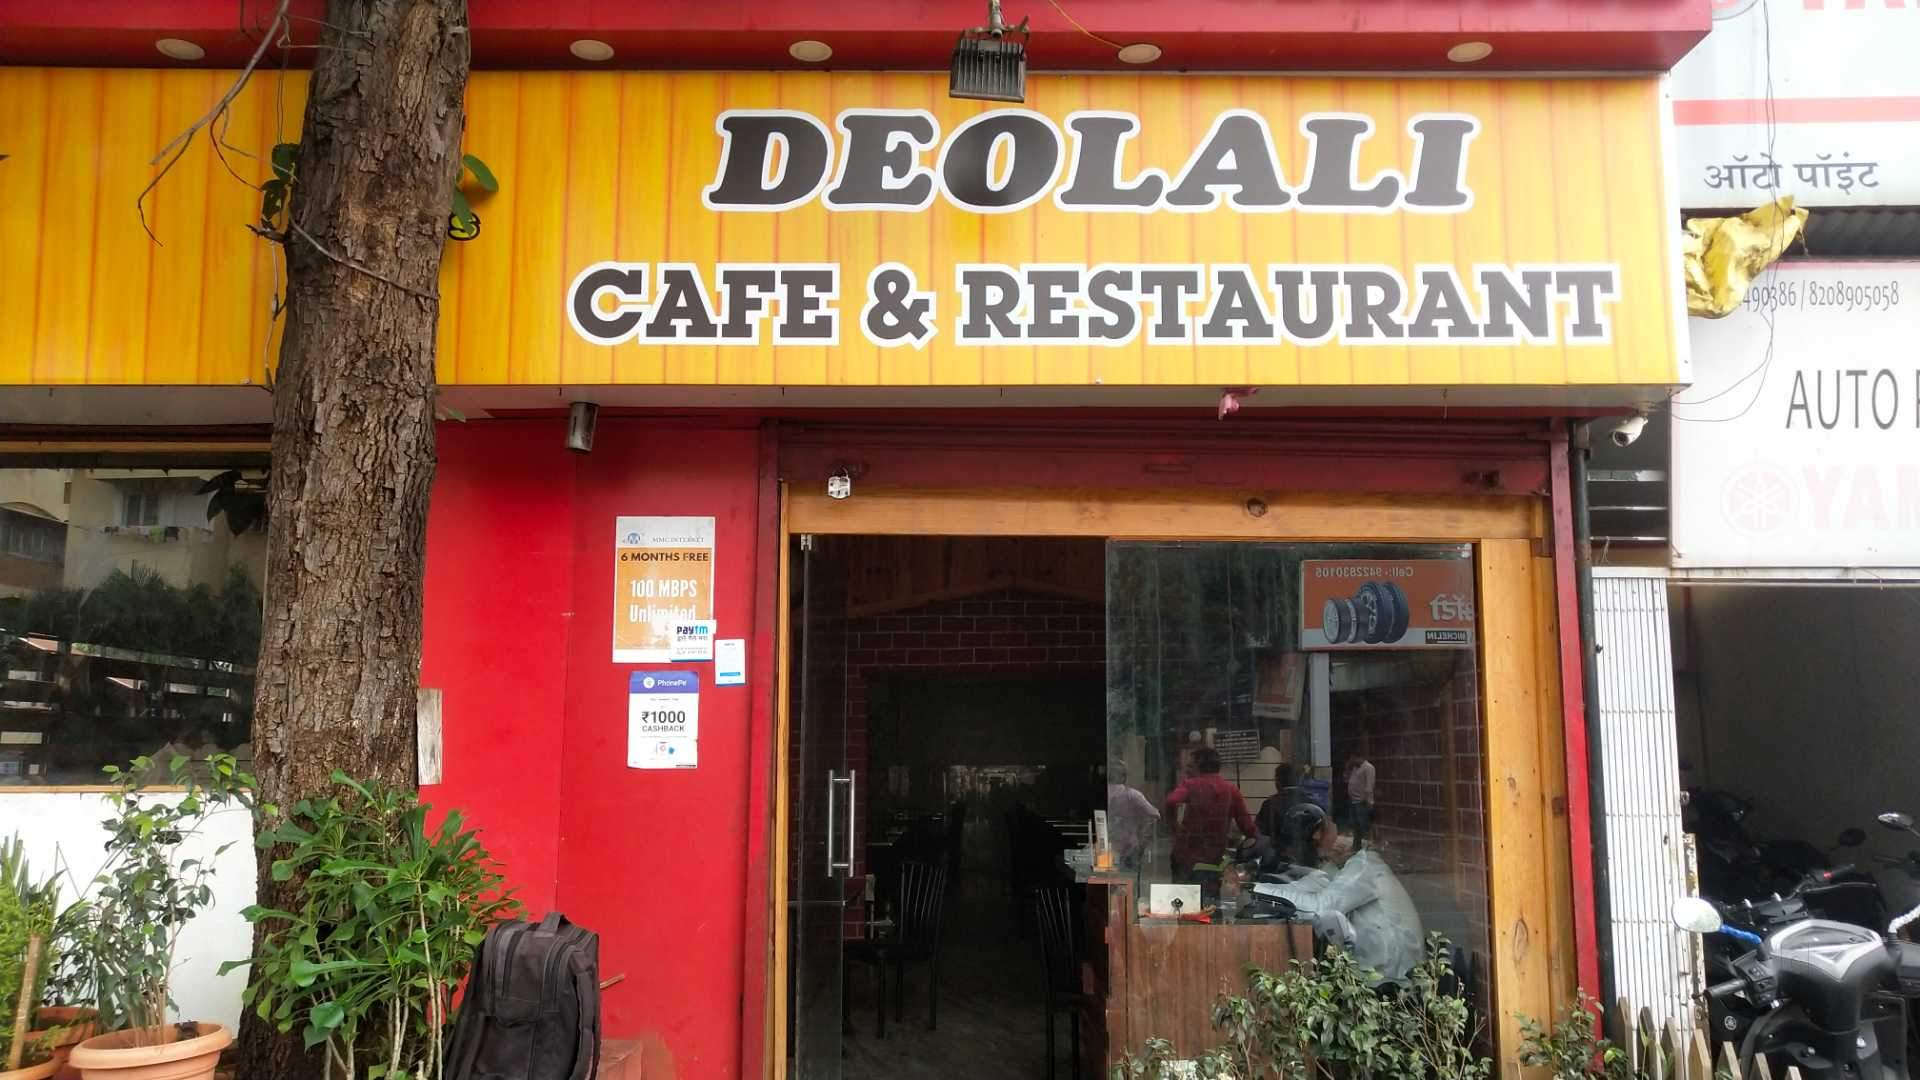 Top 10 Fast Food In Deolali Best Fast Food Restaurant